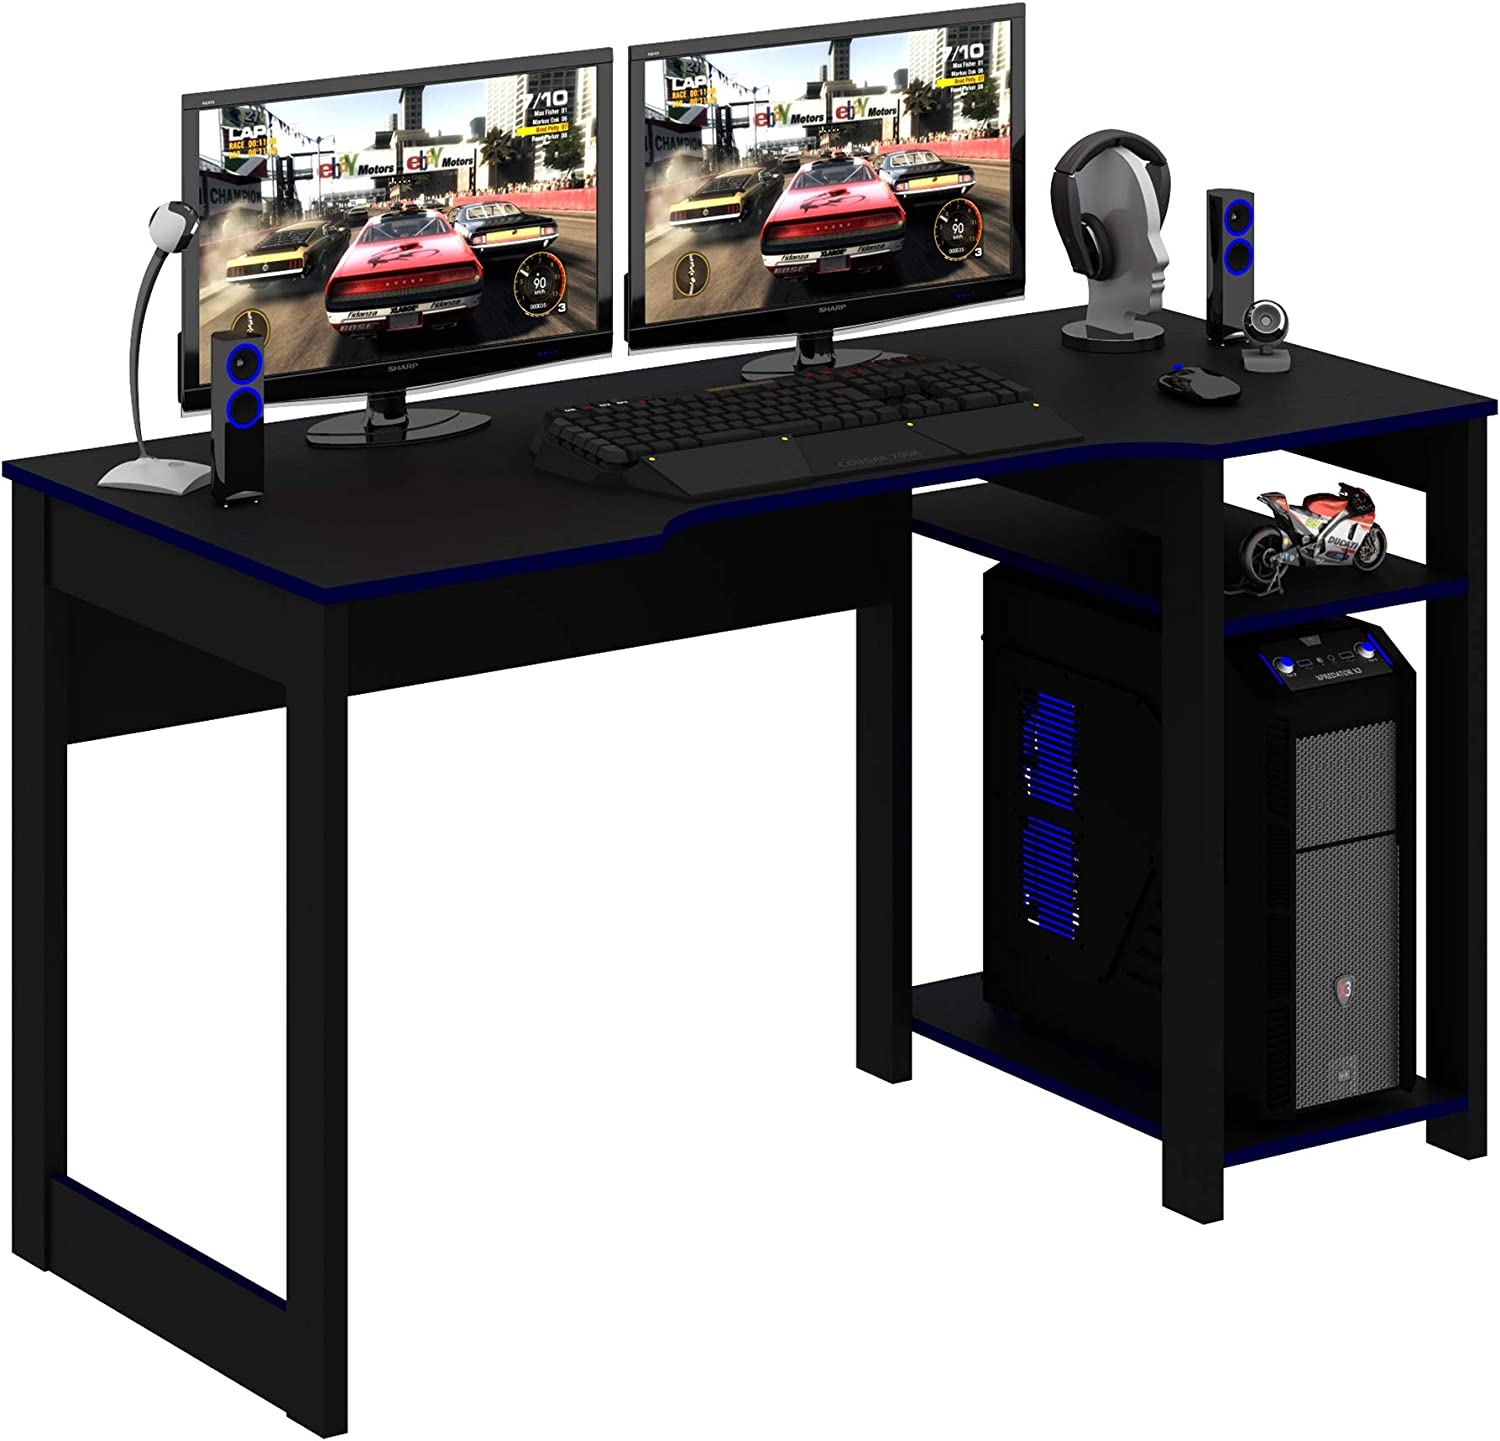 At the Max 48% OFF price OneSpace Aurora Gaming Desk Blue Computer